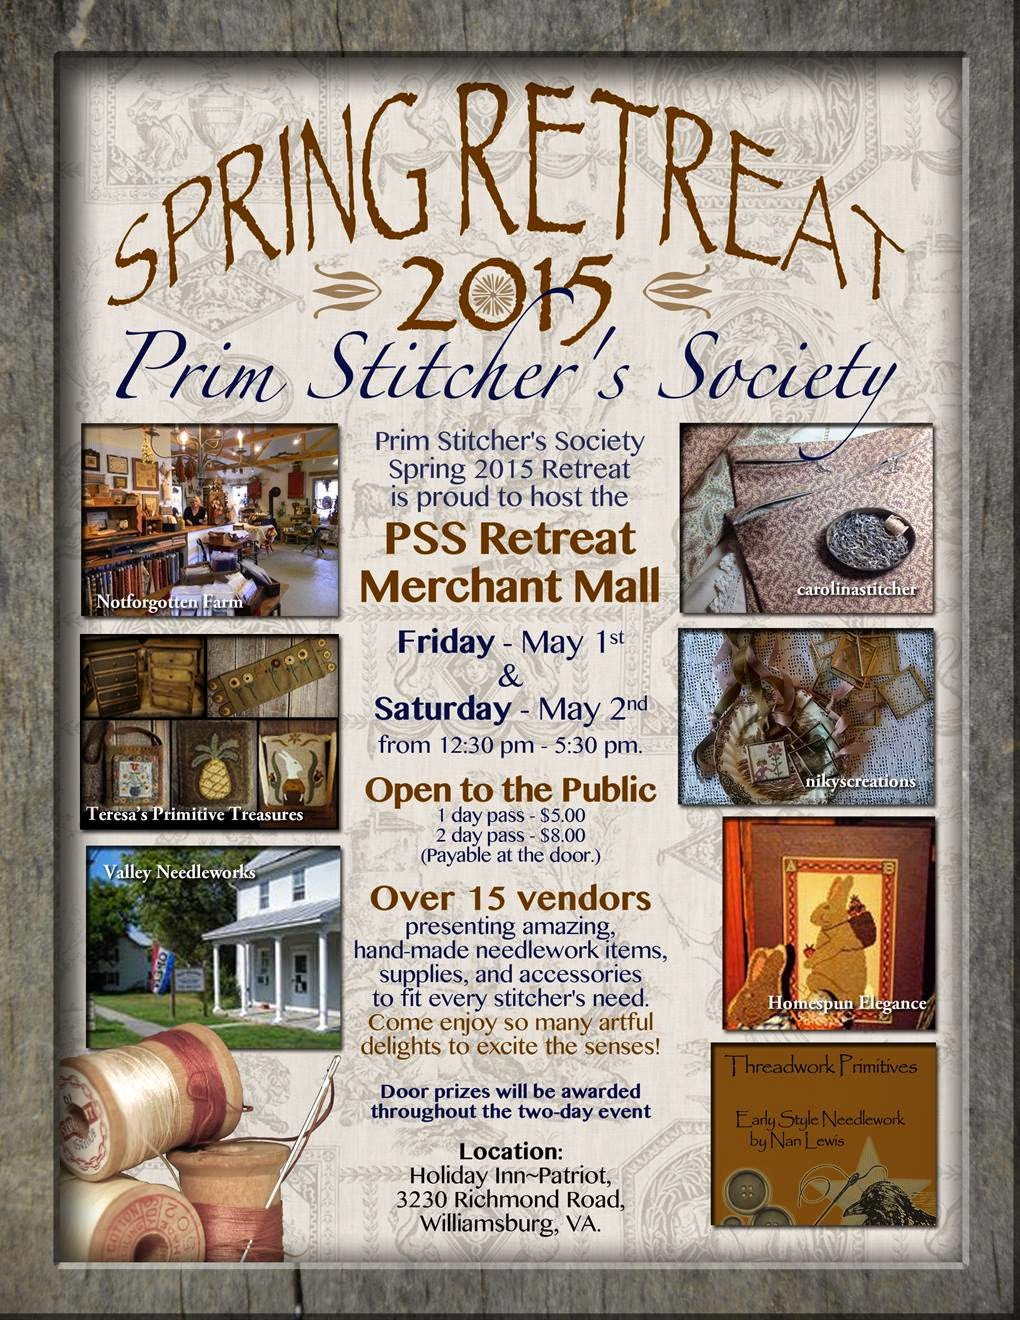 Prim Stitcher's Society Spring Retreat